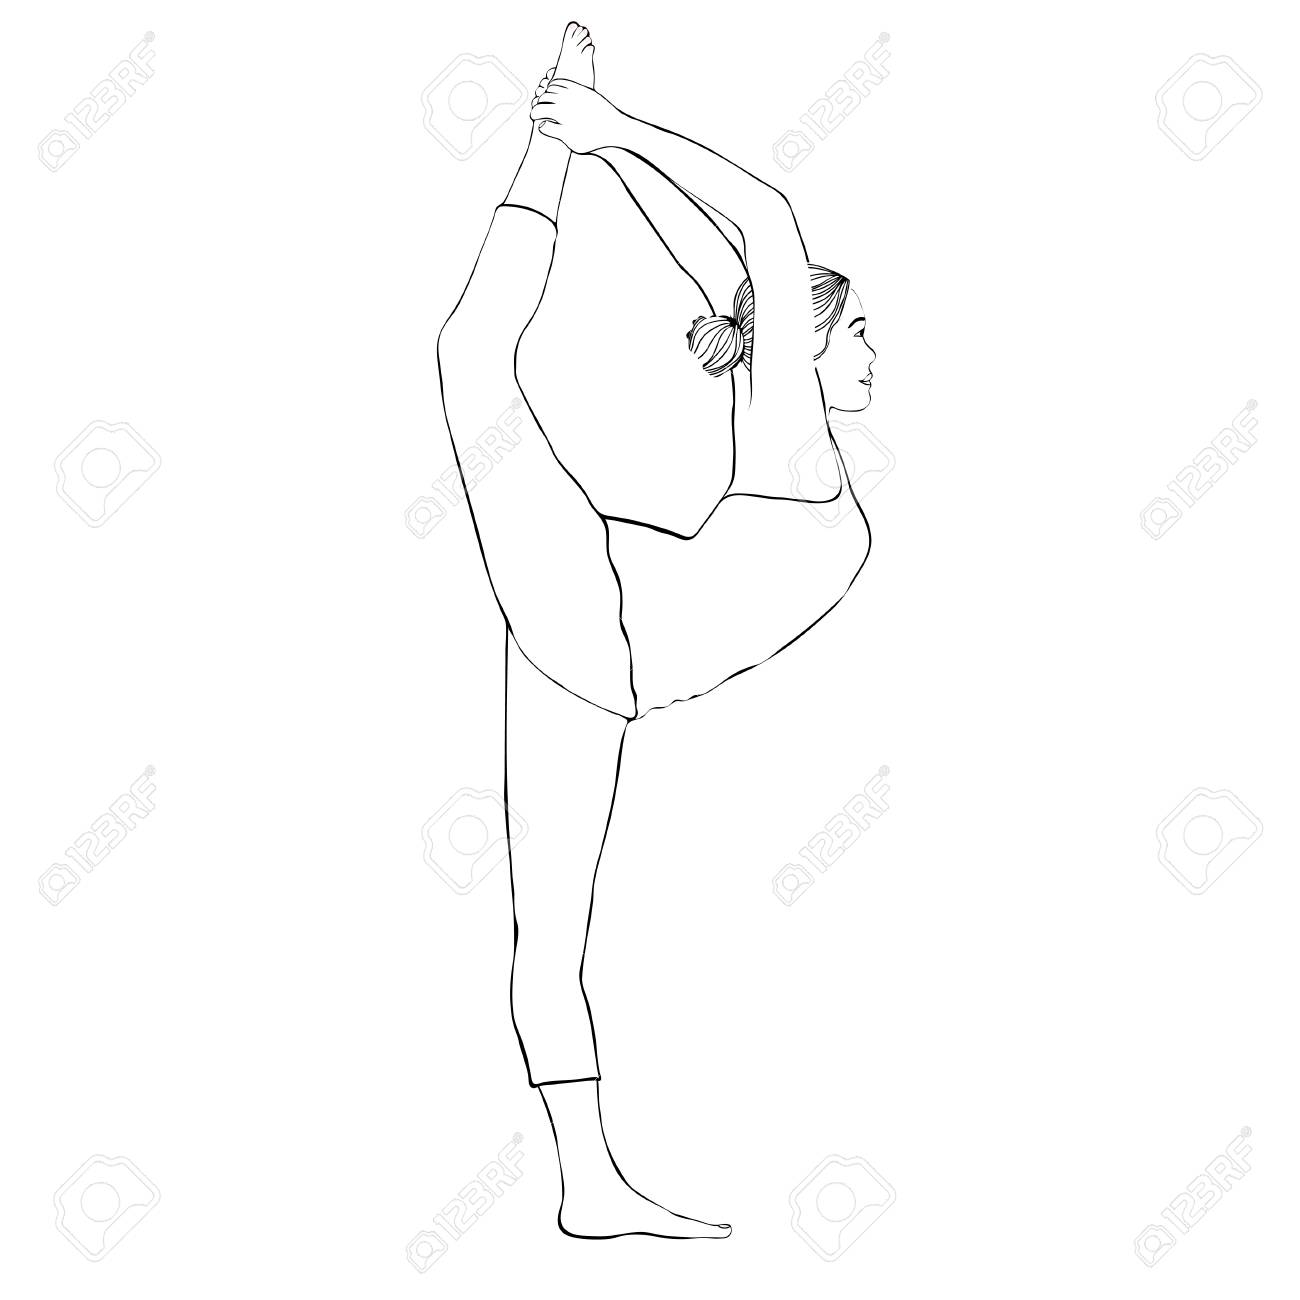 how to draw a person doing gymnastics gymnastics girl sketch by yenthe joline grace39s things draw doing person how gymnastics a to